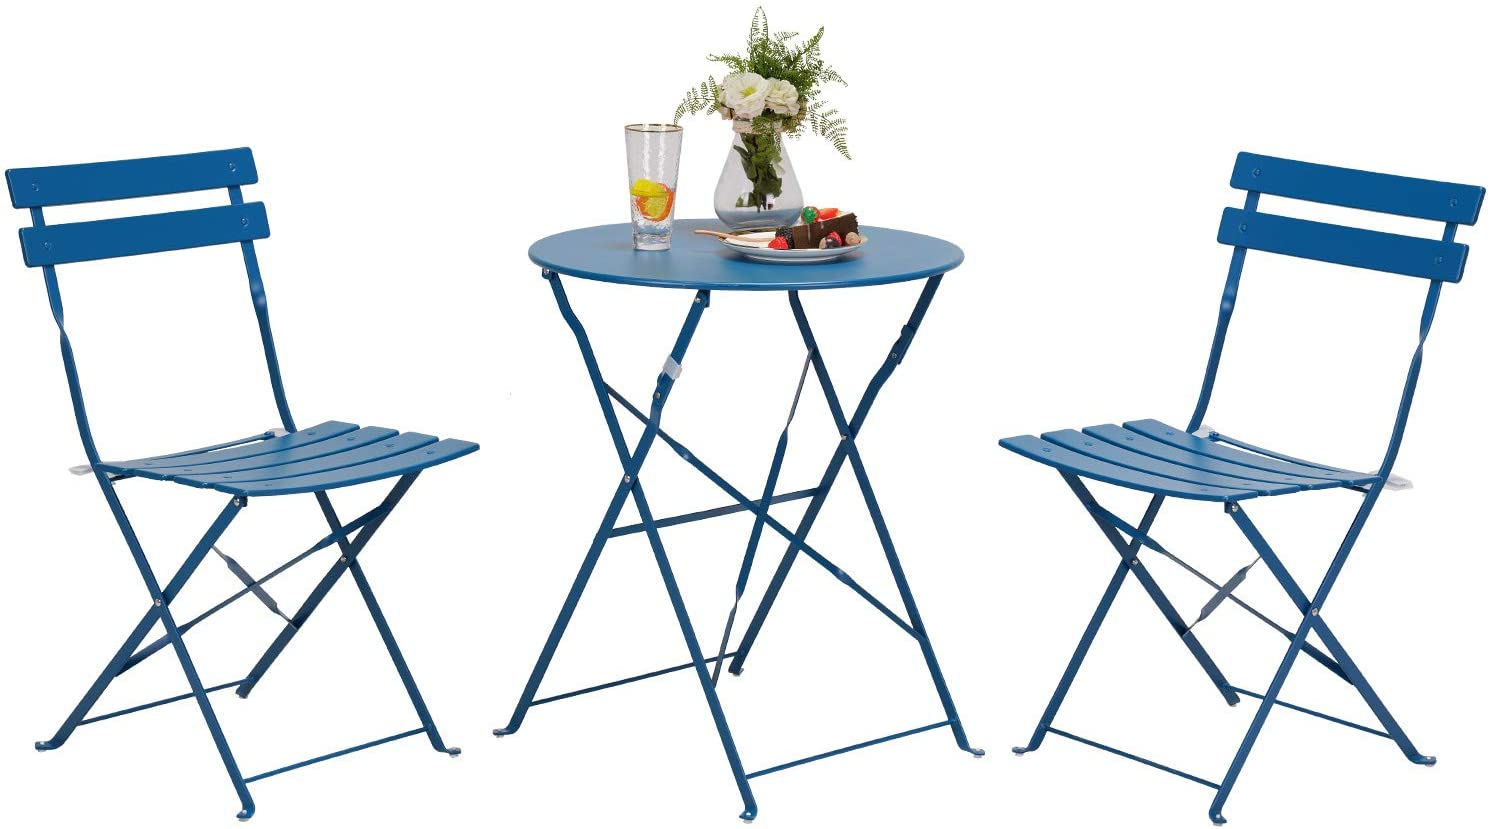 grand patio premium steel patio bistro set folding outdoor patio furniture sets 3 piece patio set of foldable patio table and chairs peacock blue